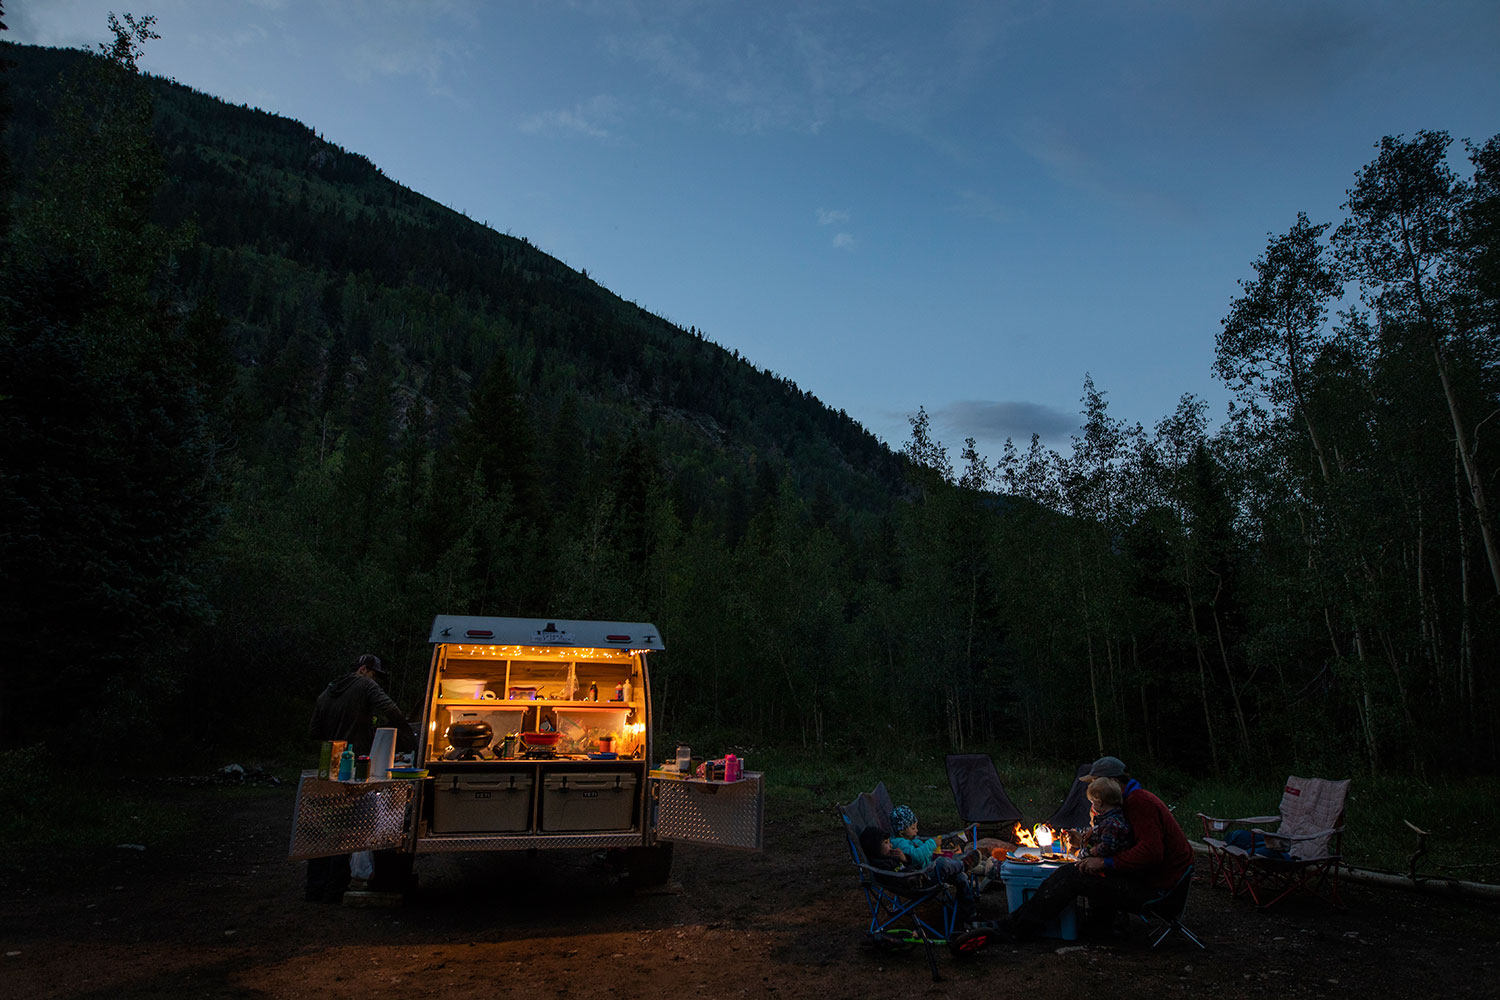 Family camping with teardrop trailer at night in the mountains